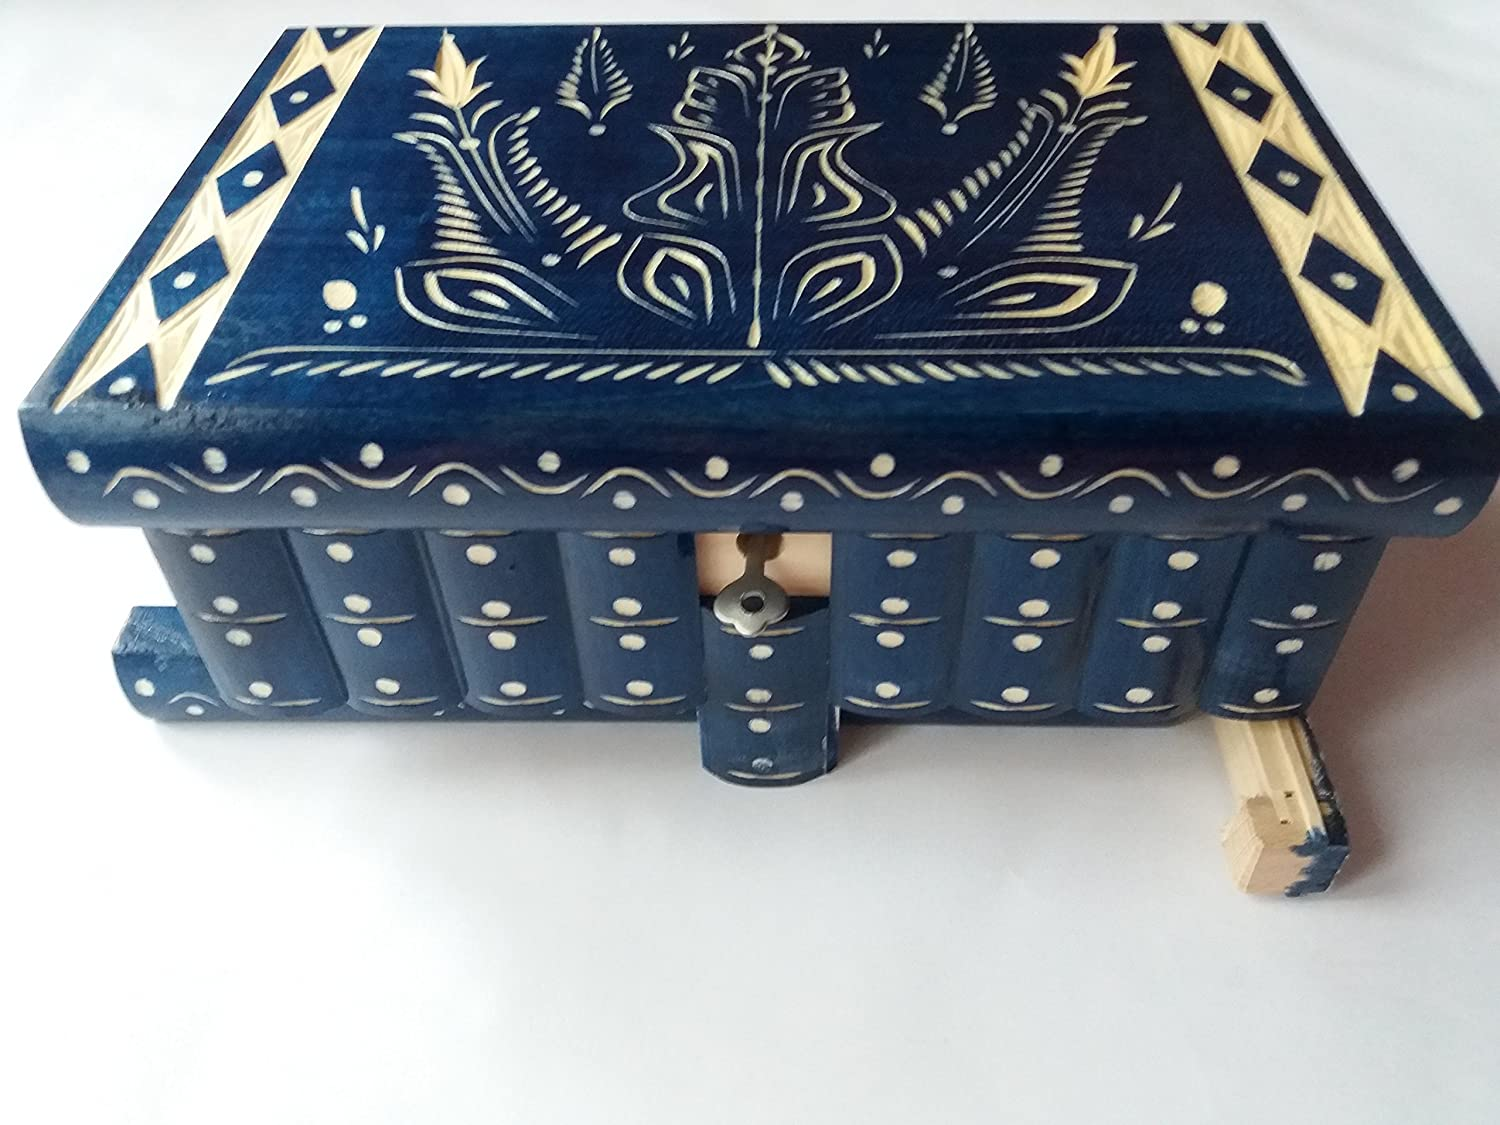 Huge puzzle box magic jewelry box premium treasure gift new very big box blue handmade mystery case carved wooden storage brain teaser